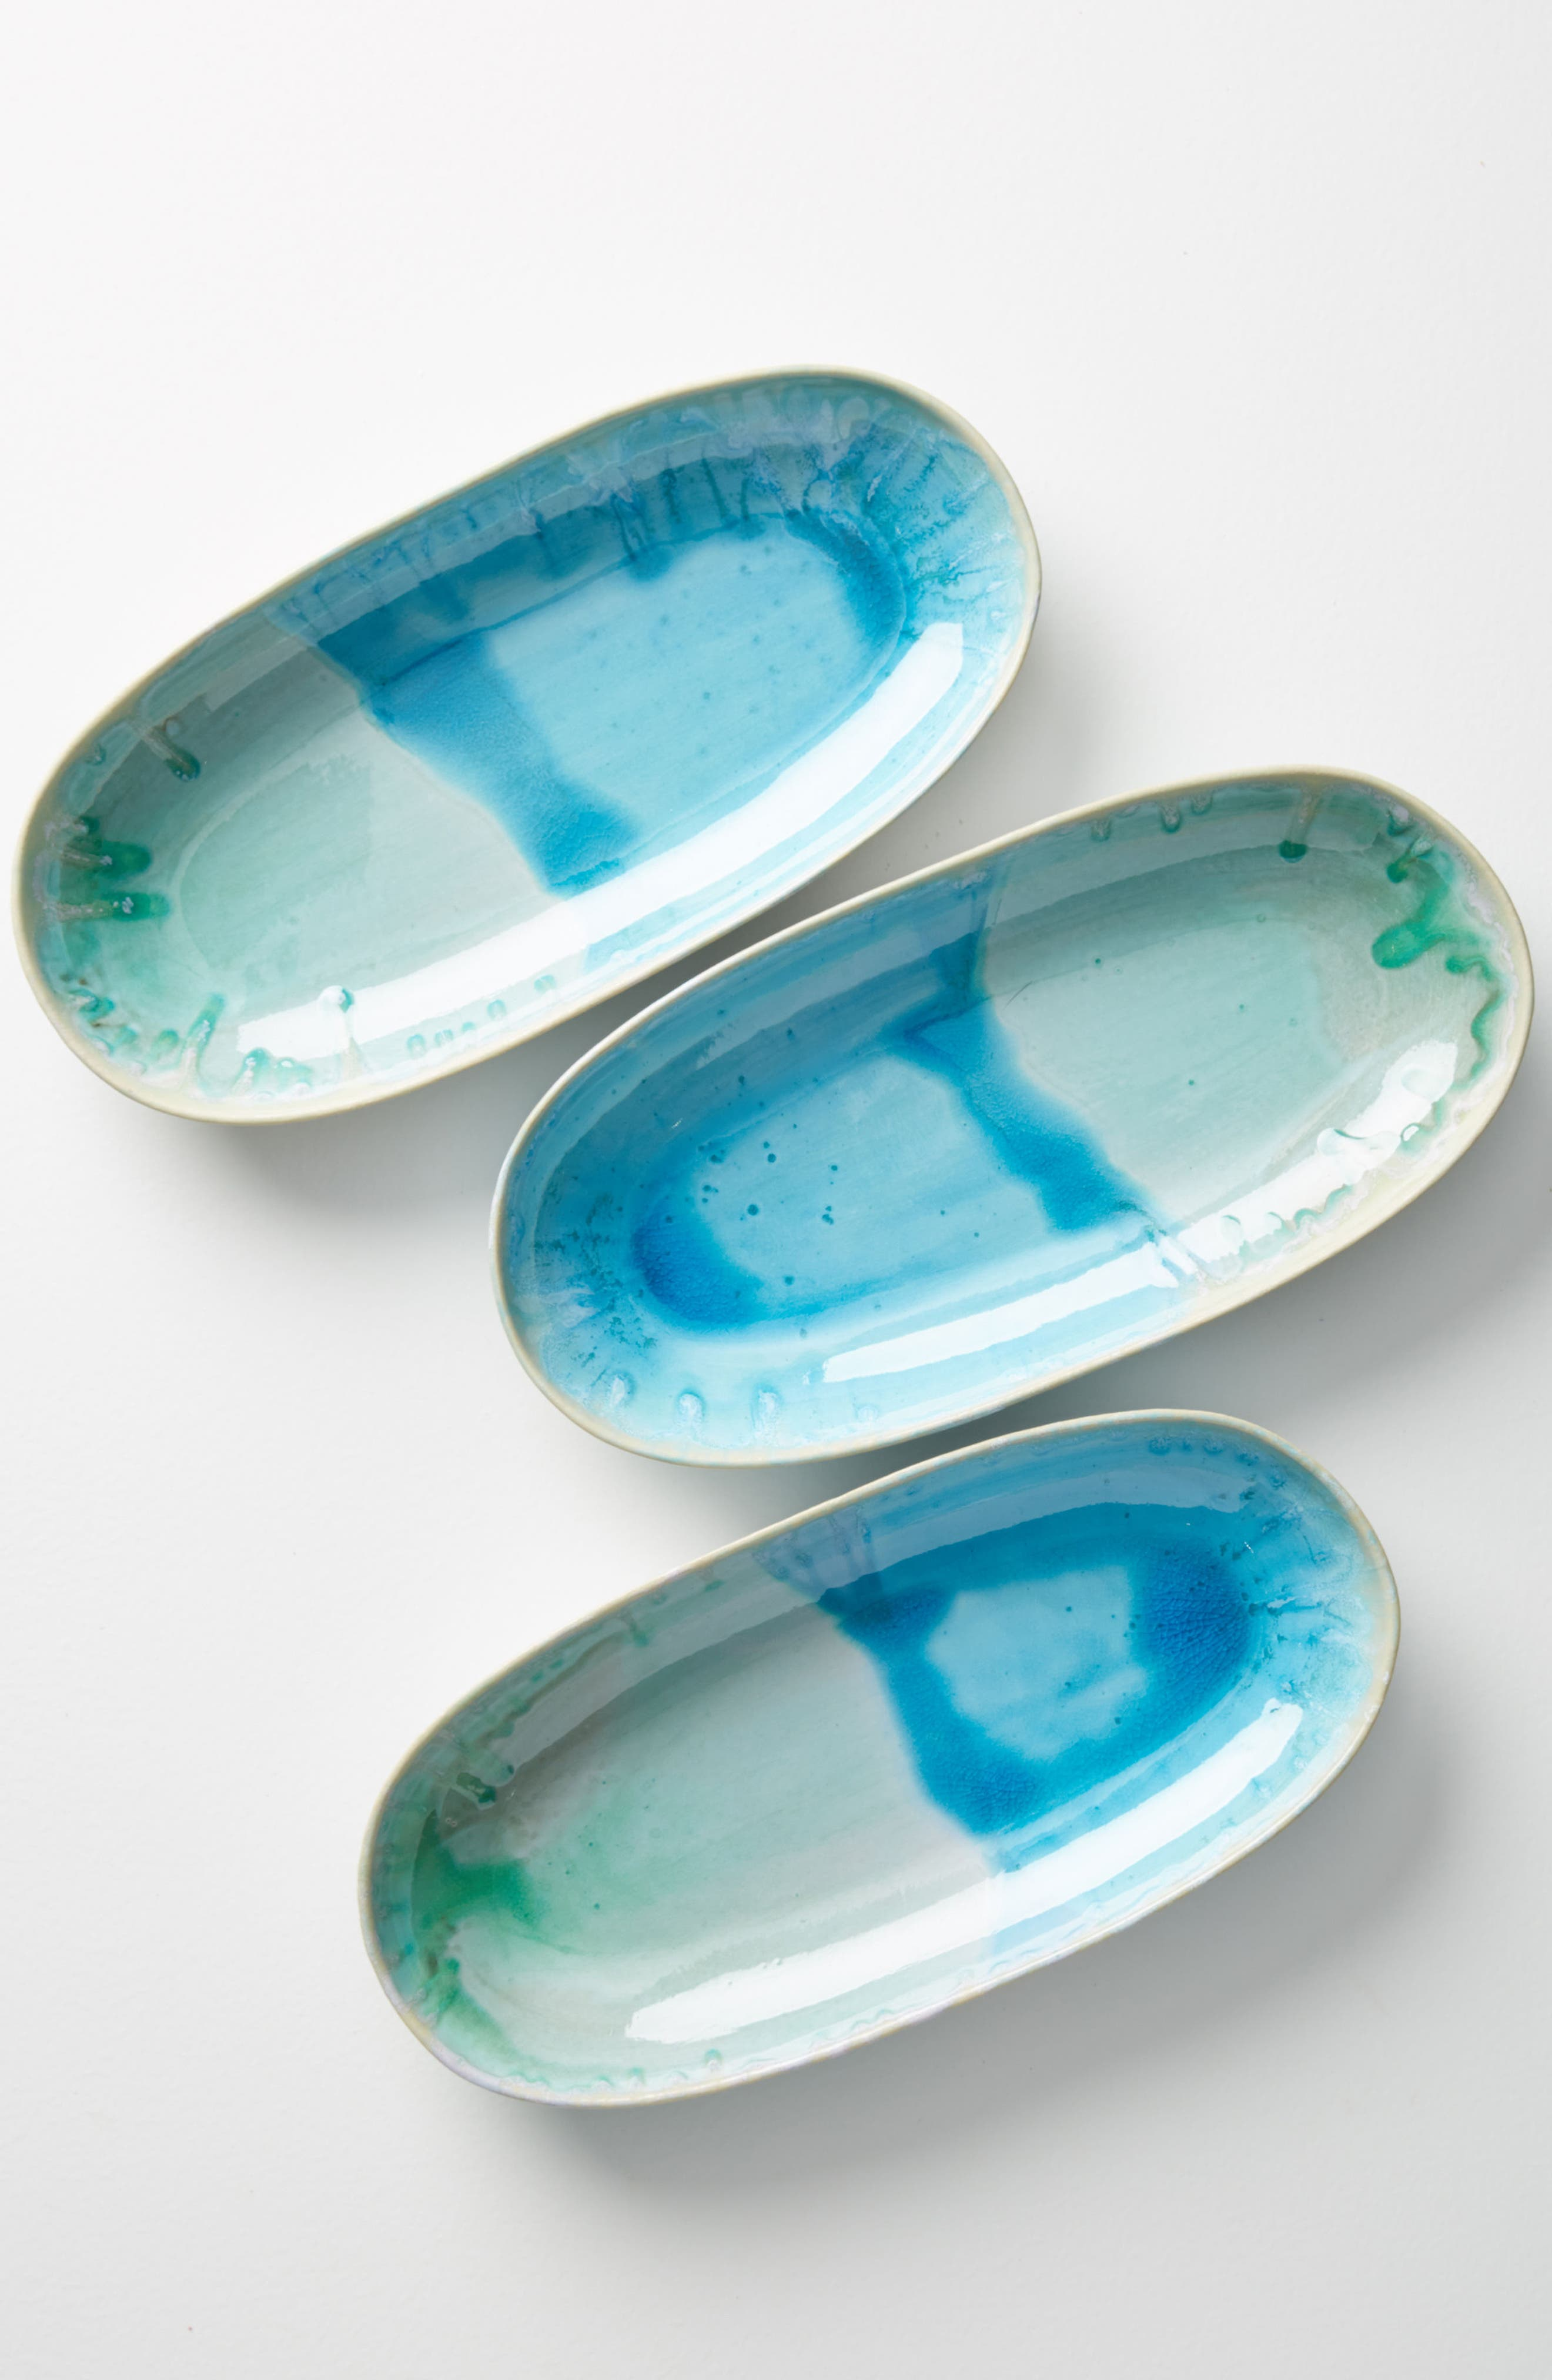 Piet Small Platter,                             Main thumbnail 1, color,                             Turquoise